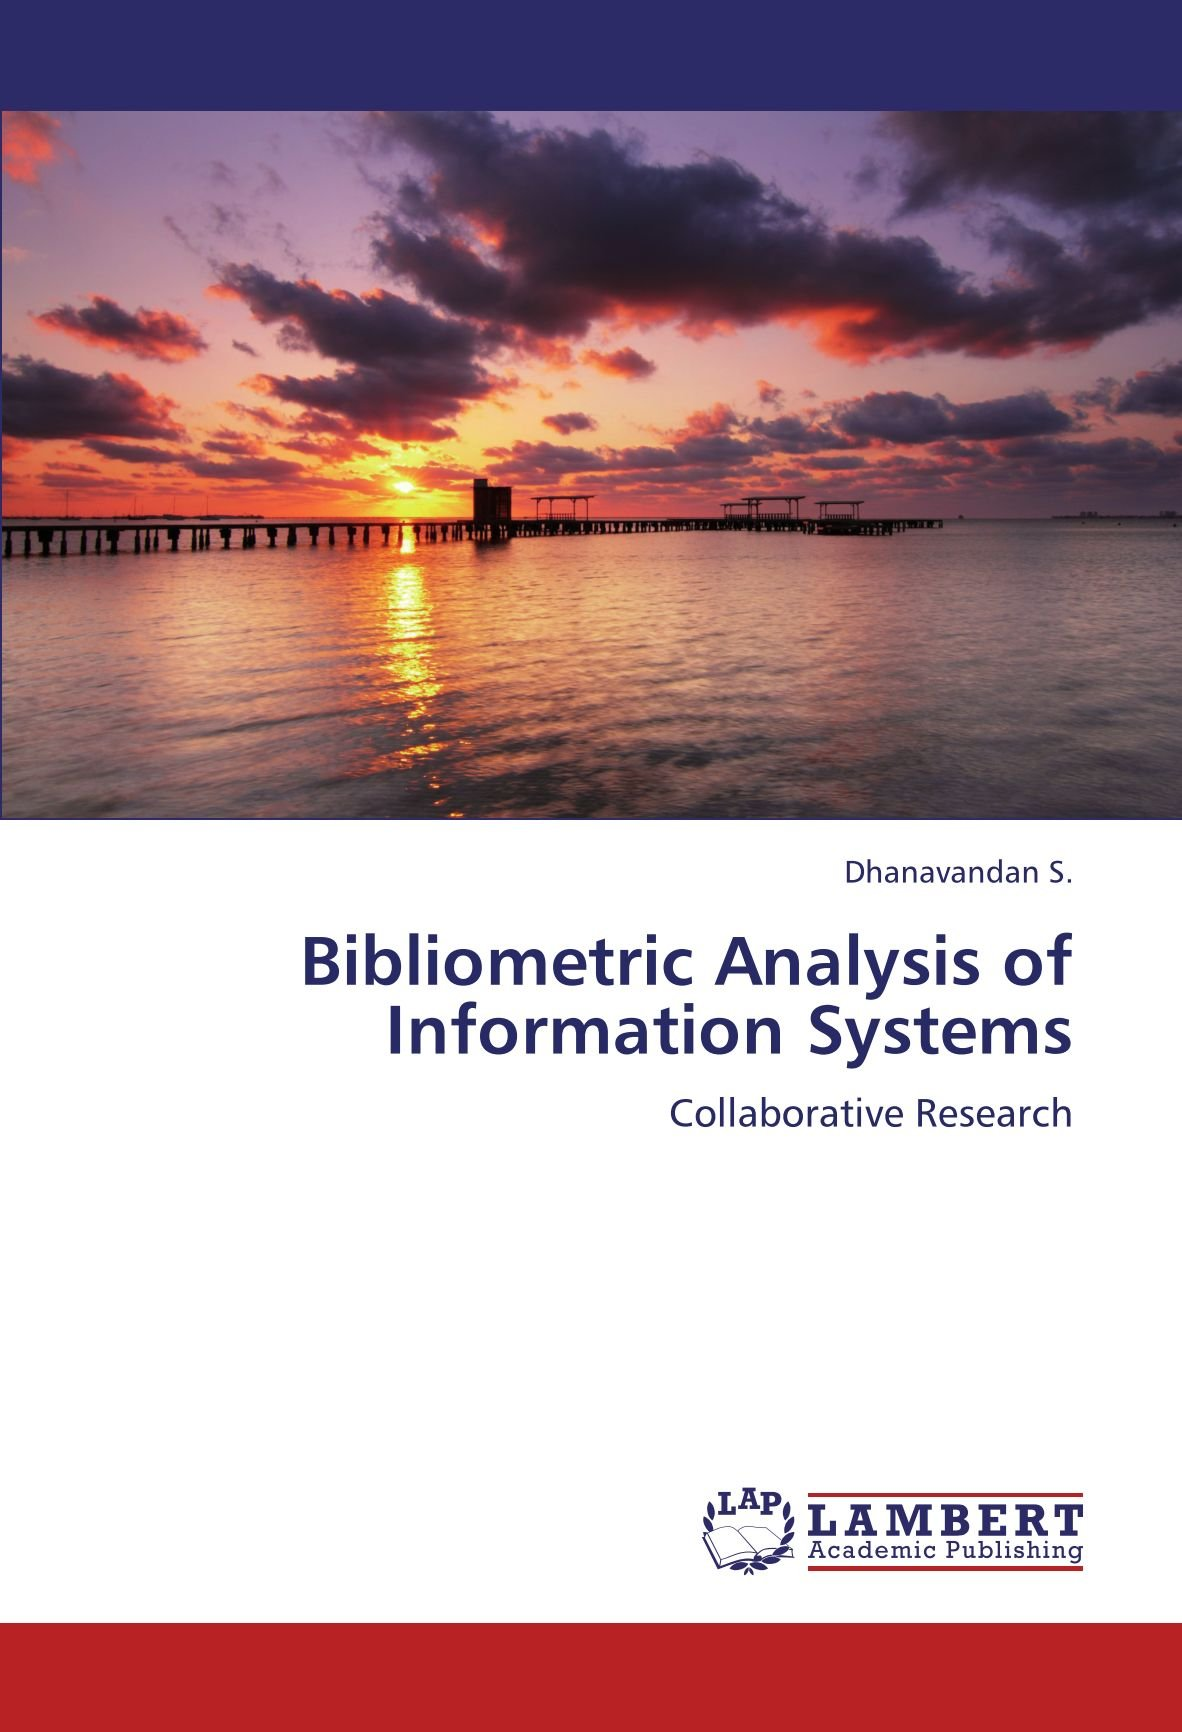 Download Bibliometric Analysis of Information Systems: Collaborative Research pdf